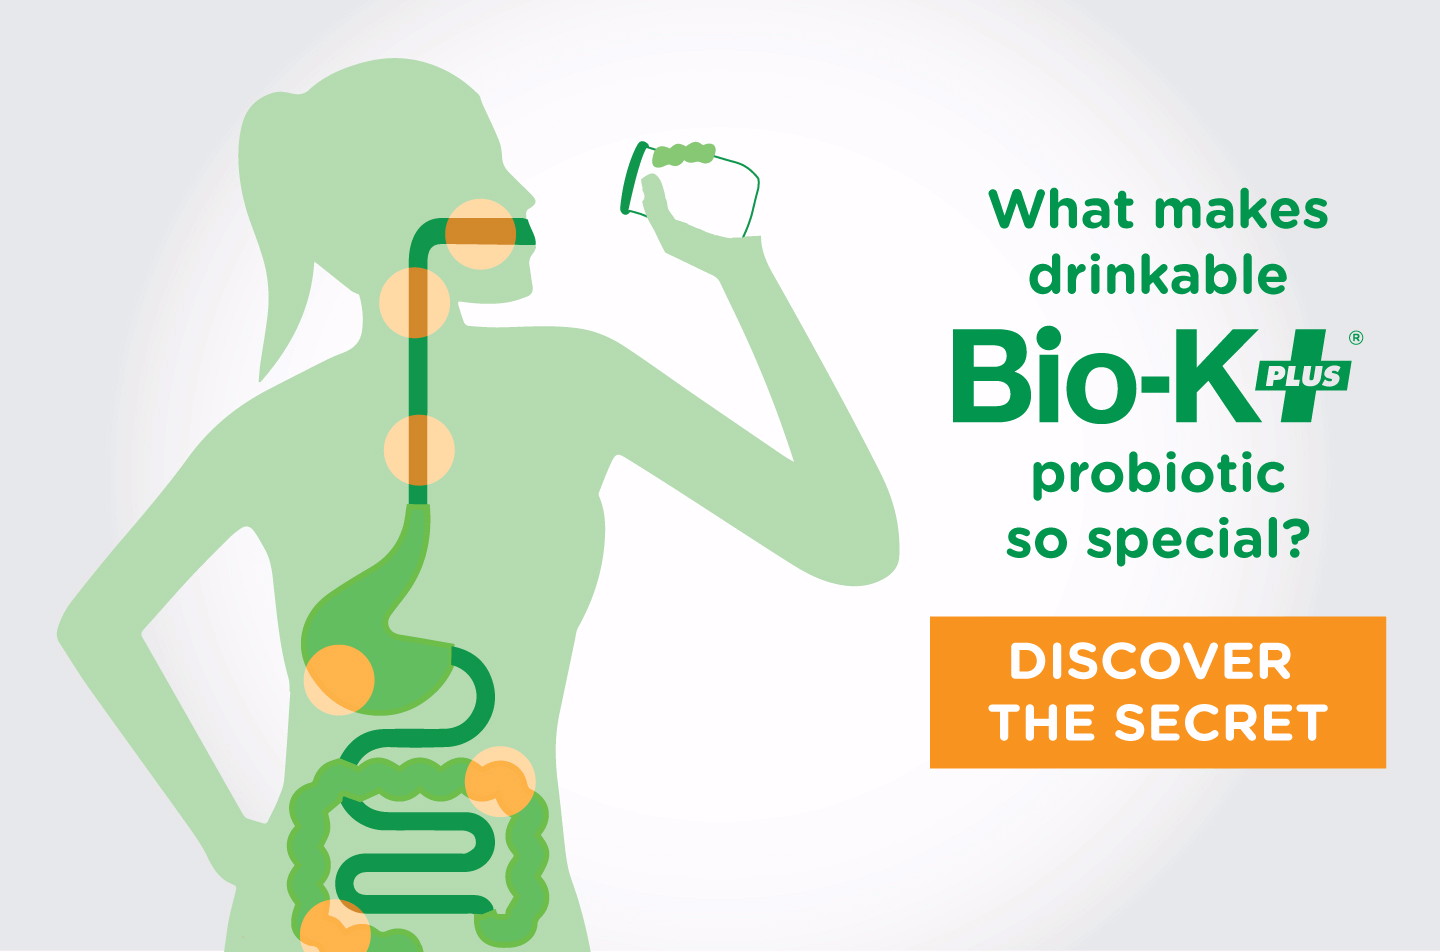 What makes drinkable Bio-K+ probiotic so special?